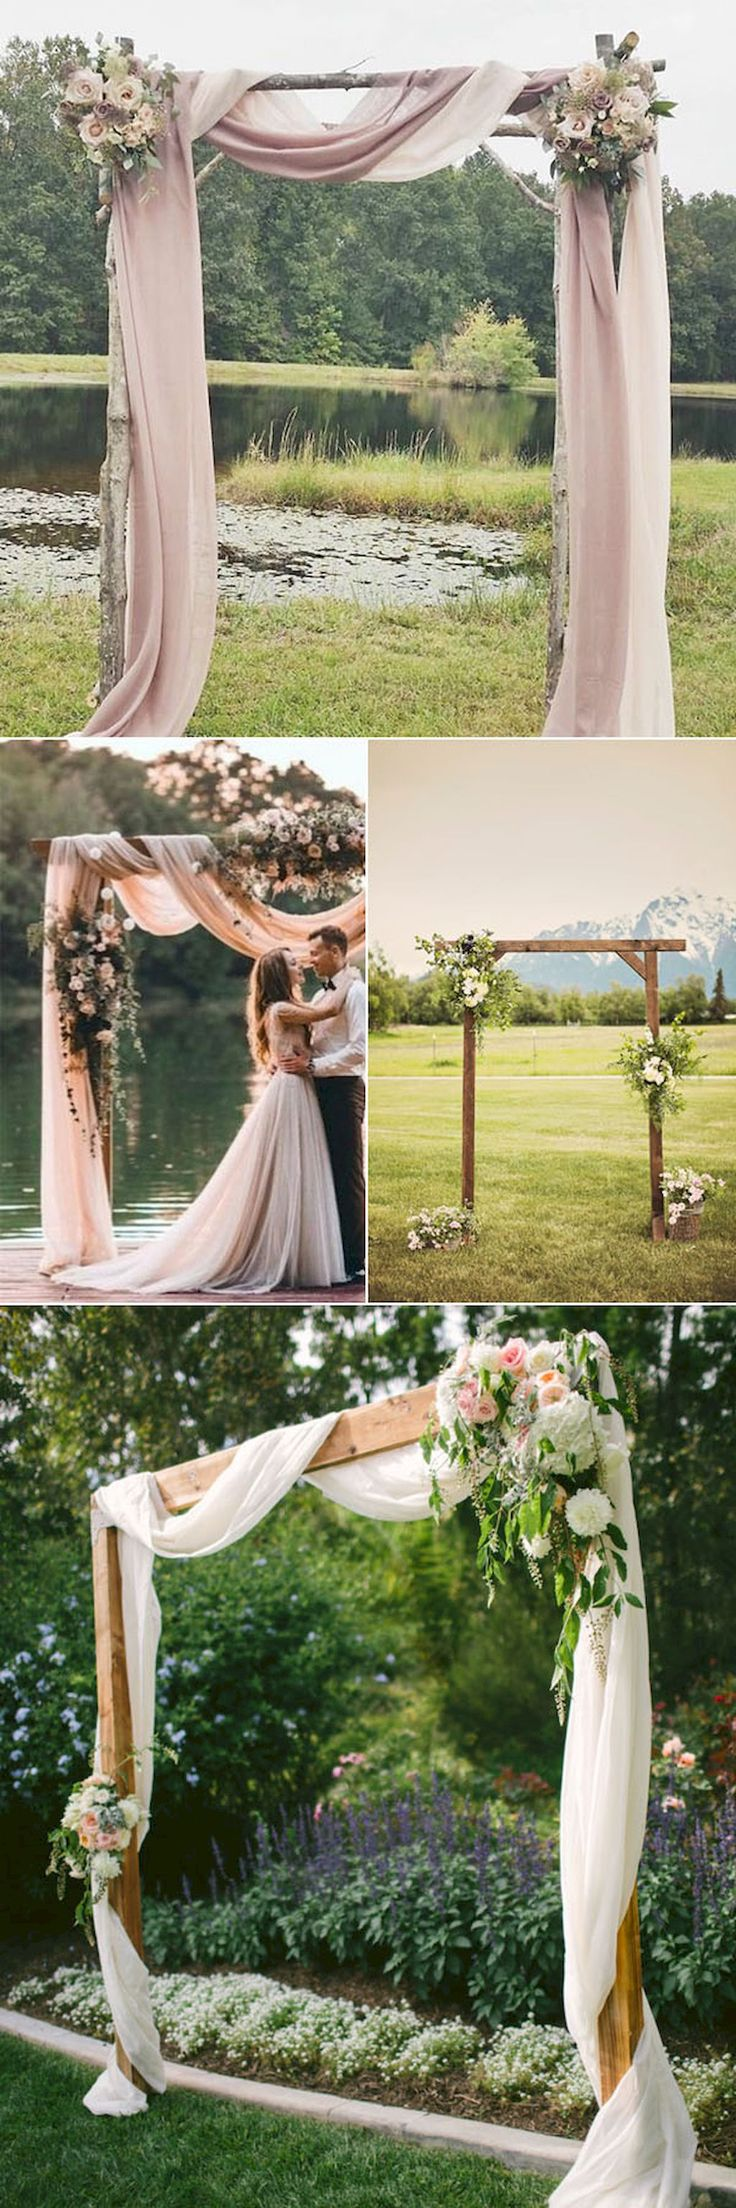 Best 25 wedding arch decorations ideas on pinterest for Outdoor wedding decorations on a budget